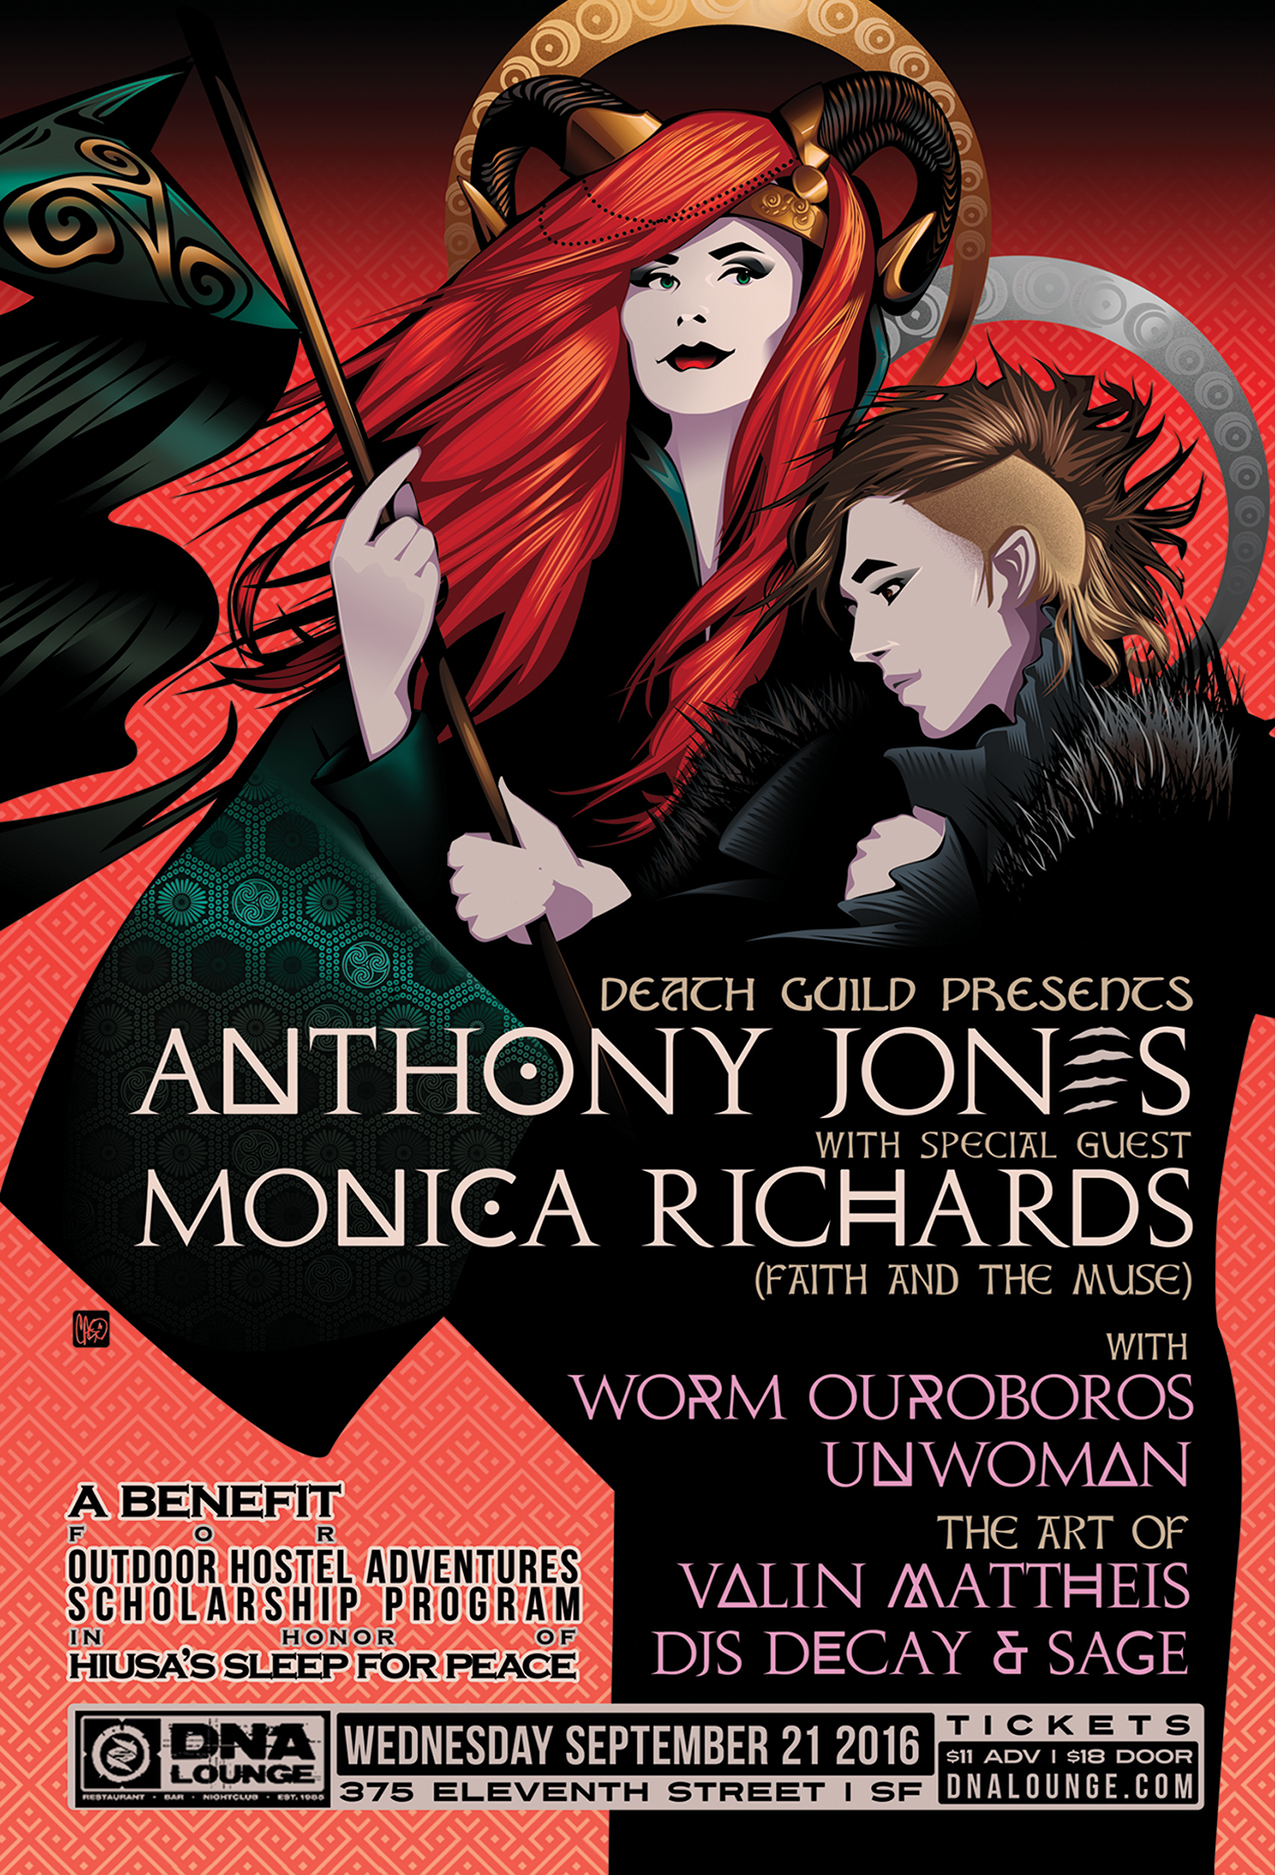 Anthony Jones | Monica Richards